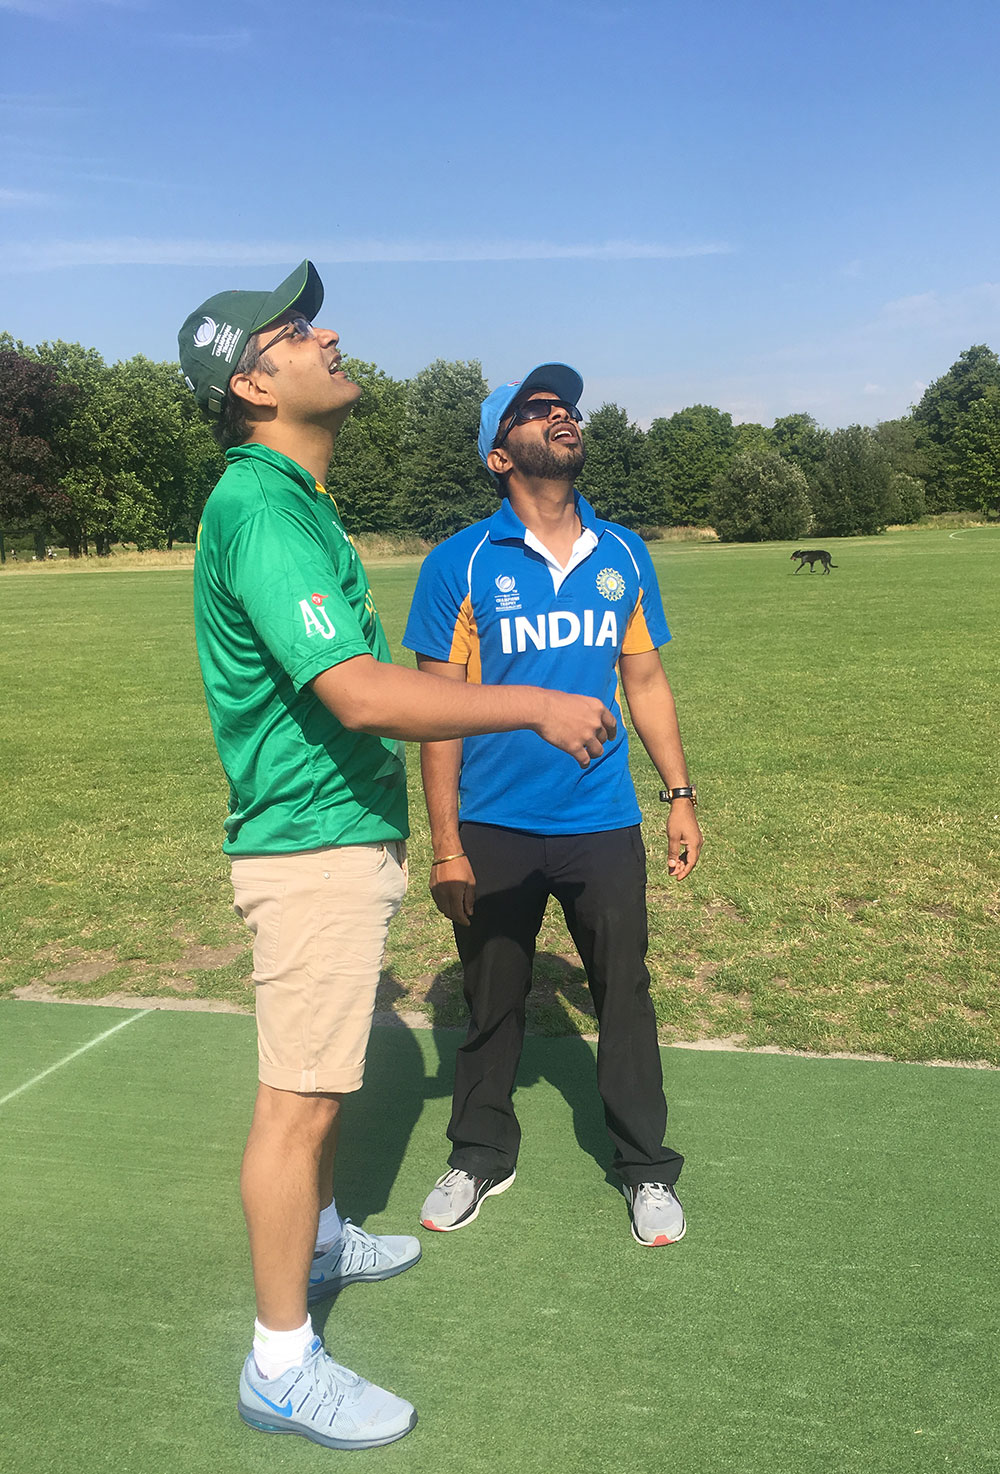 Captains Nauman Yousuf and Ravi Kant Gupta toss the coin